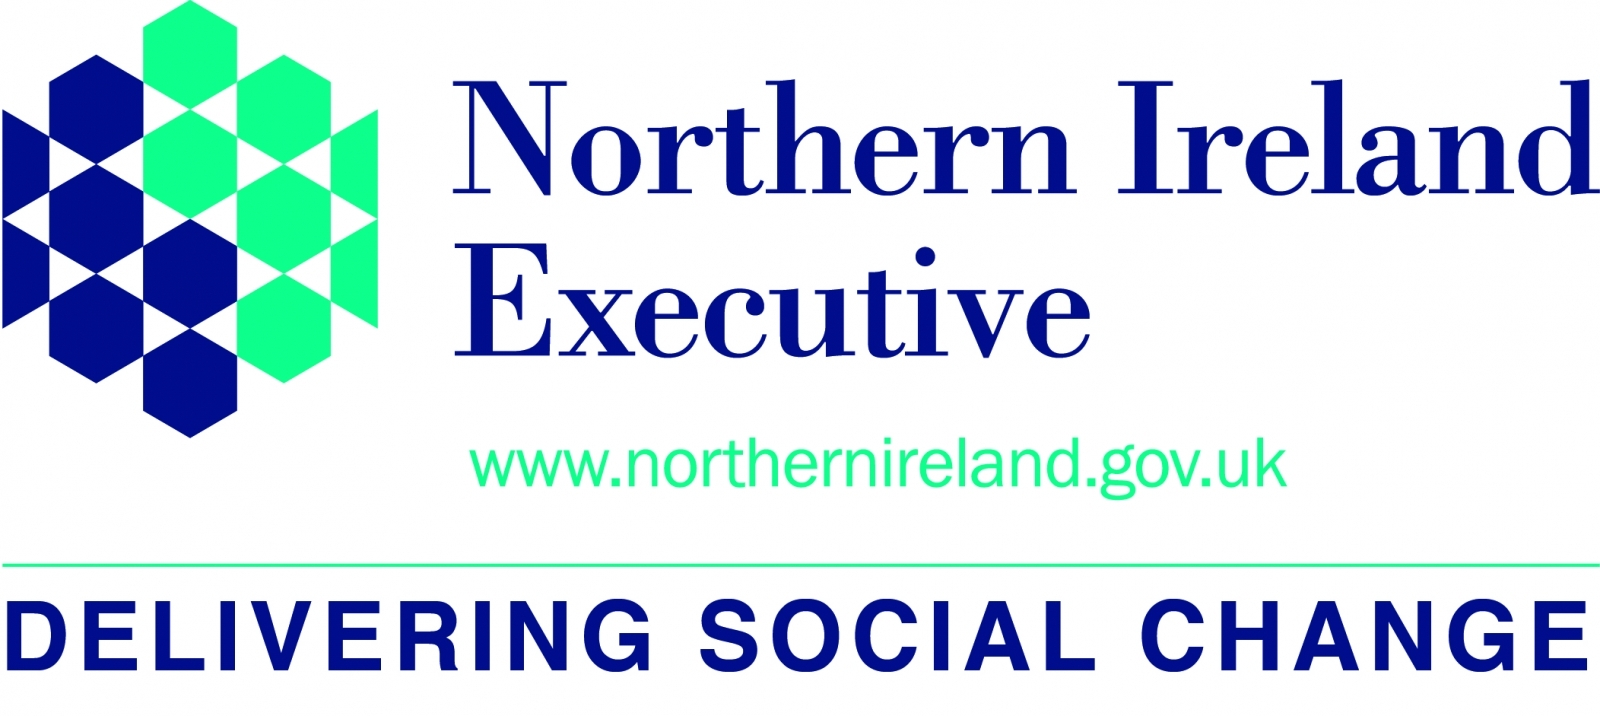 JAN-2018-F-Field-SCHOOLS-EXHIBITION-Northern-Ireland-Executive-Delivering-Social-Change-logo.jpg#asset:8497